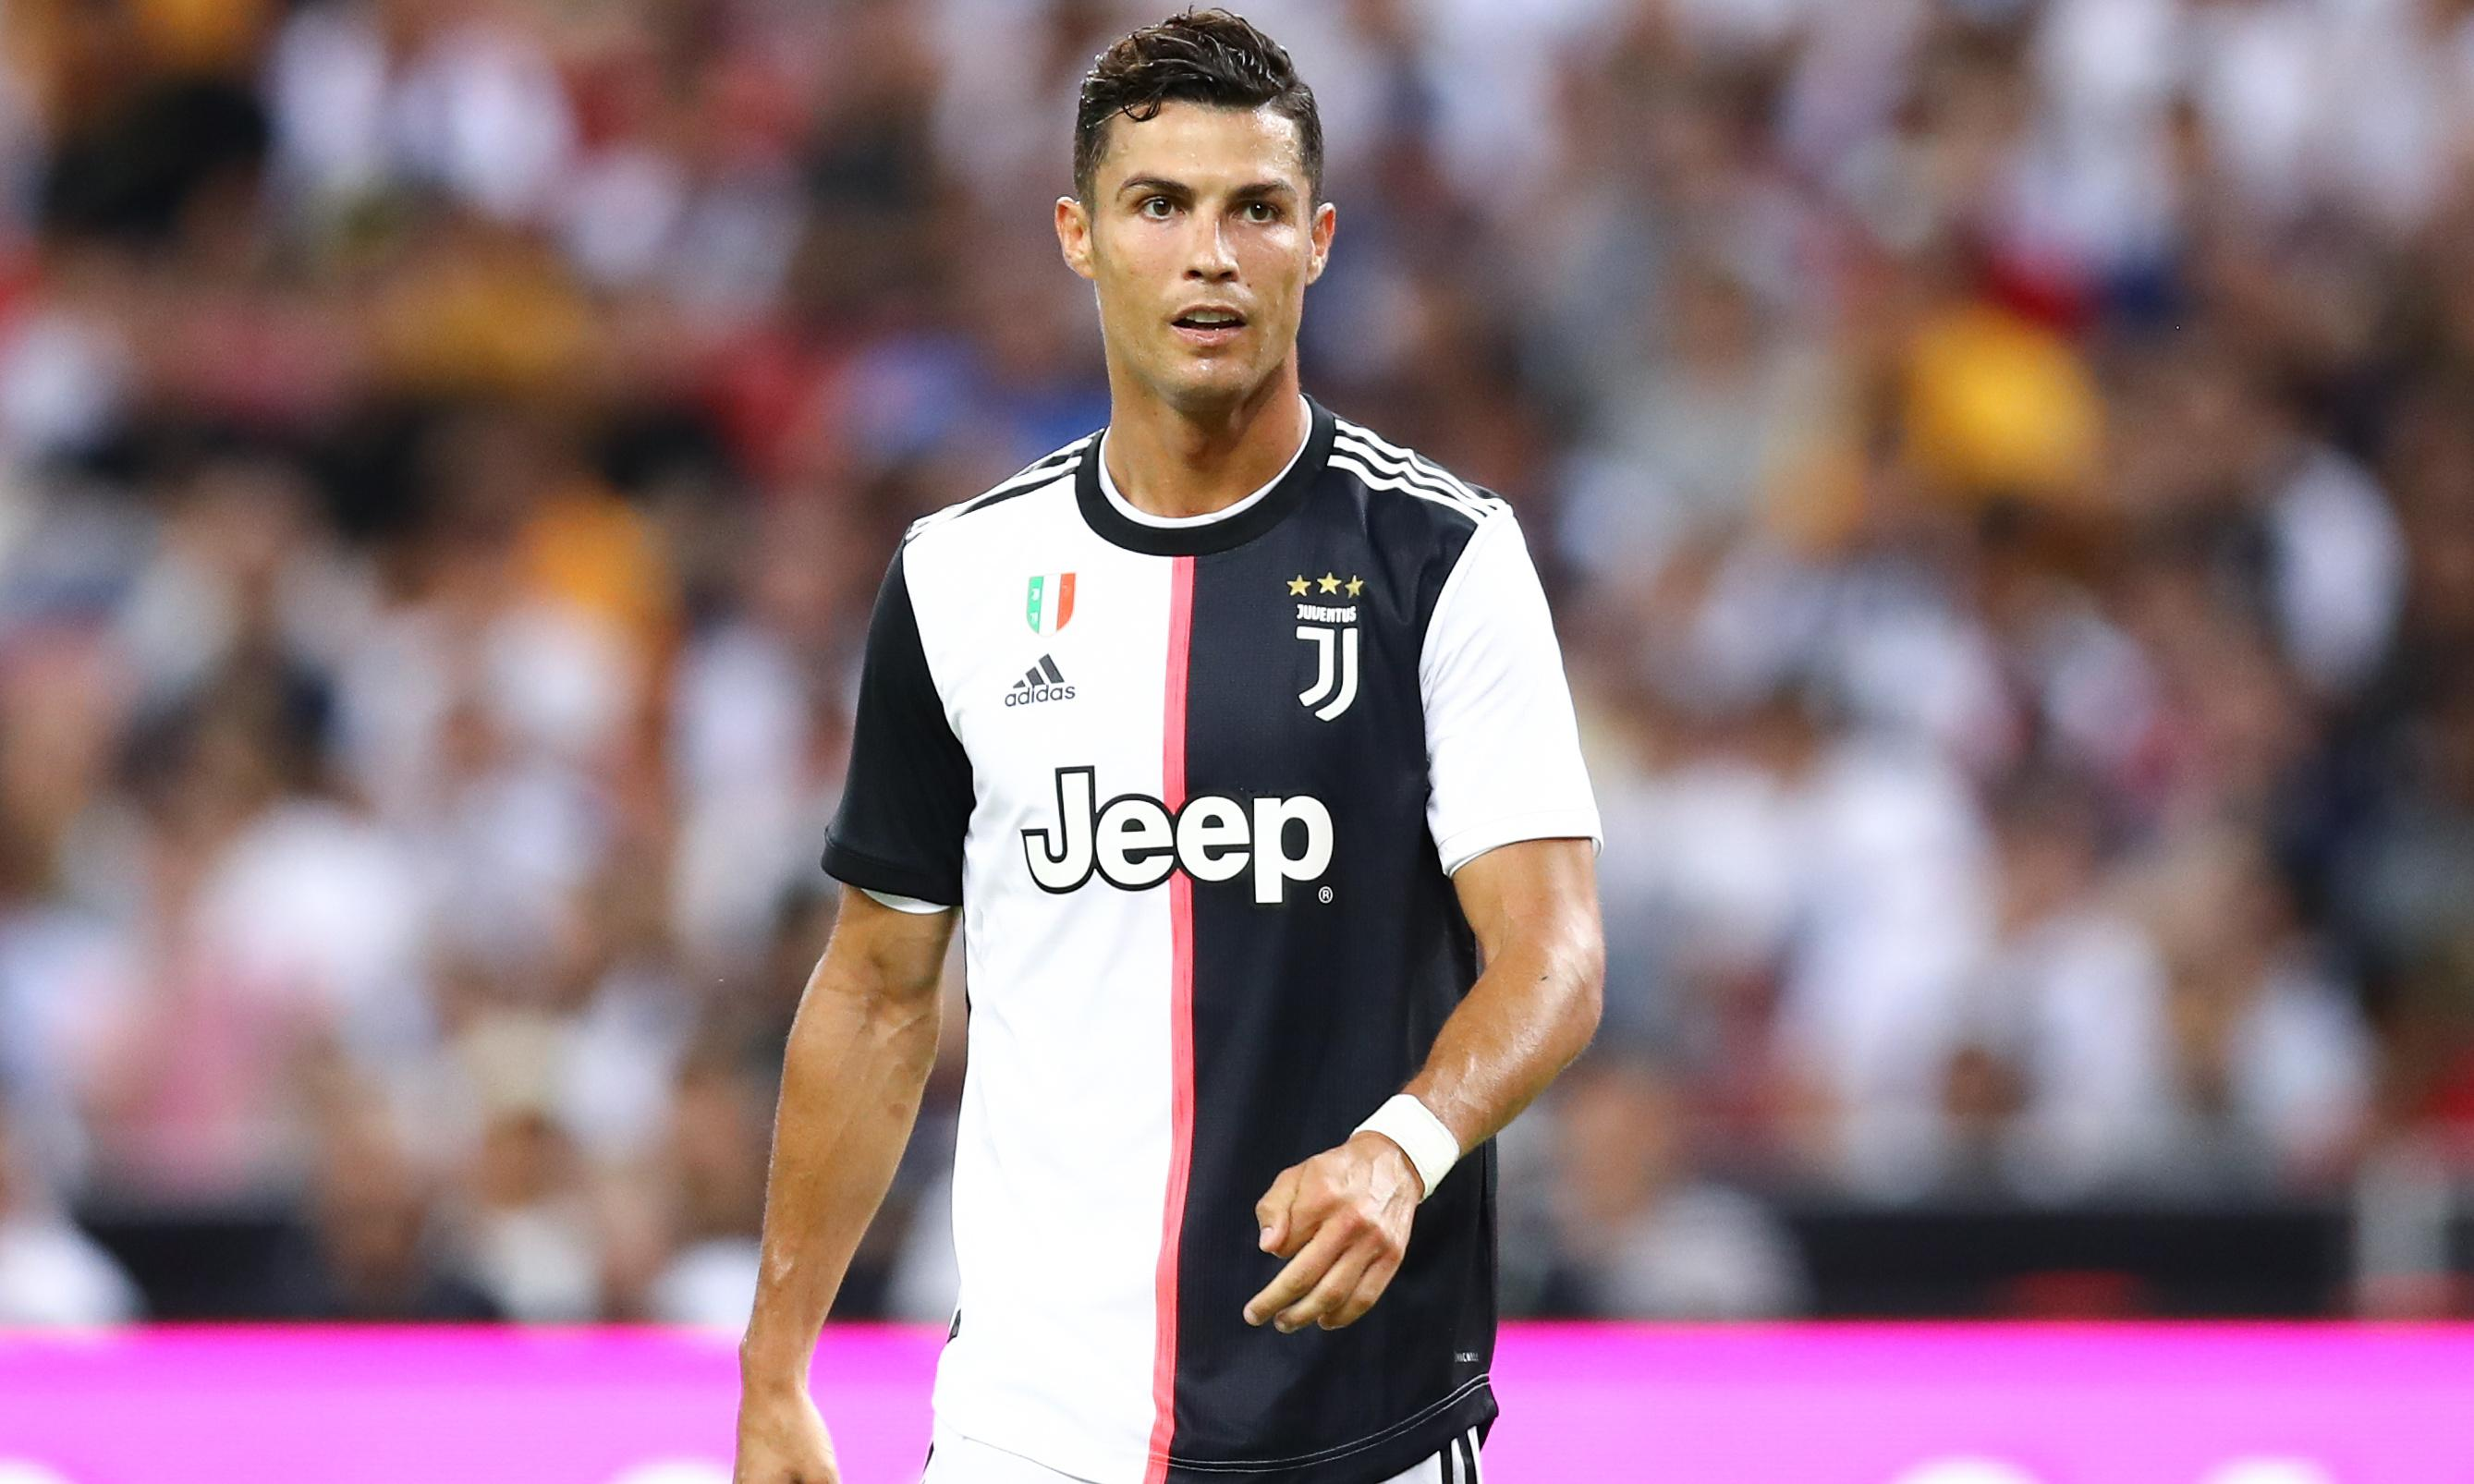 Cristiano Ronaldo will not face criminal charges over rape allegations